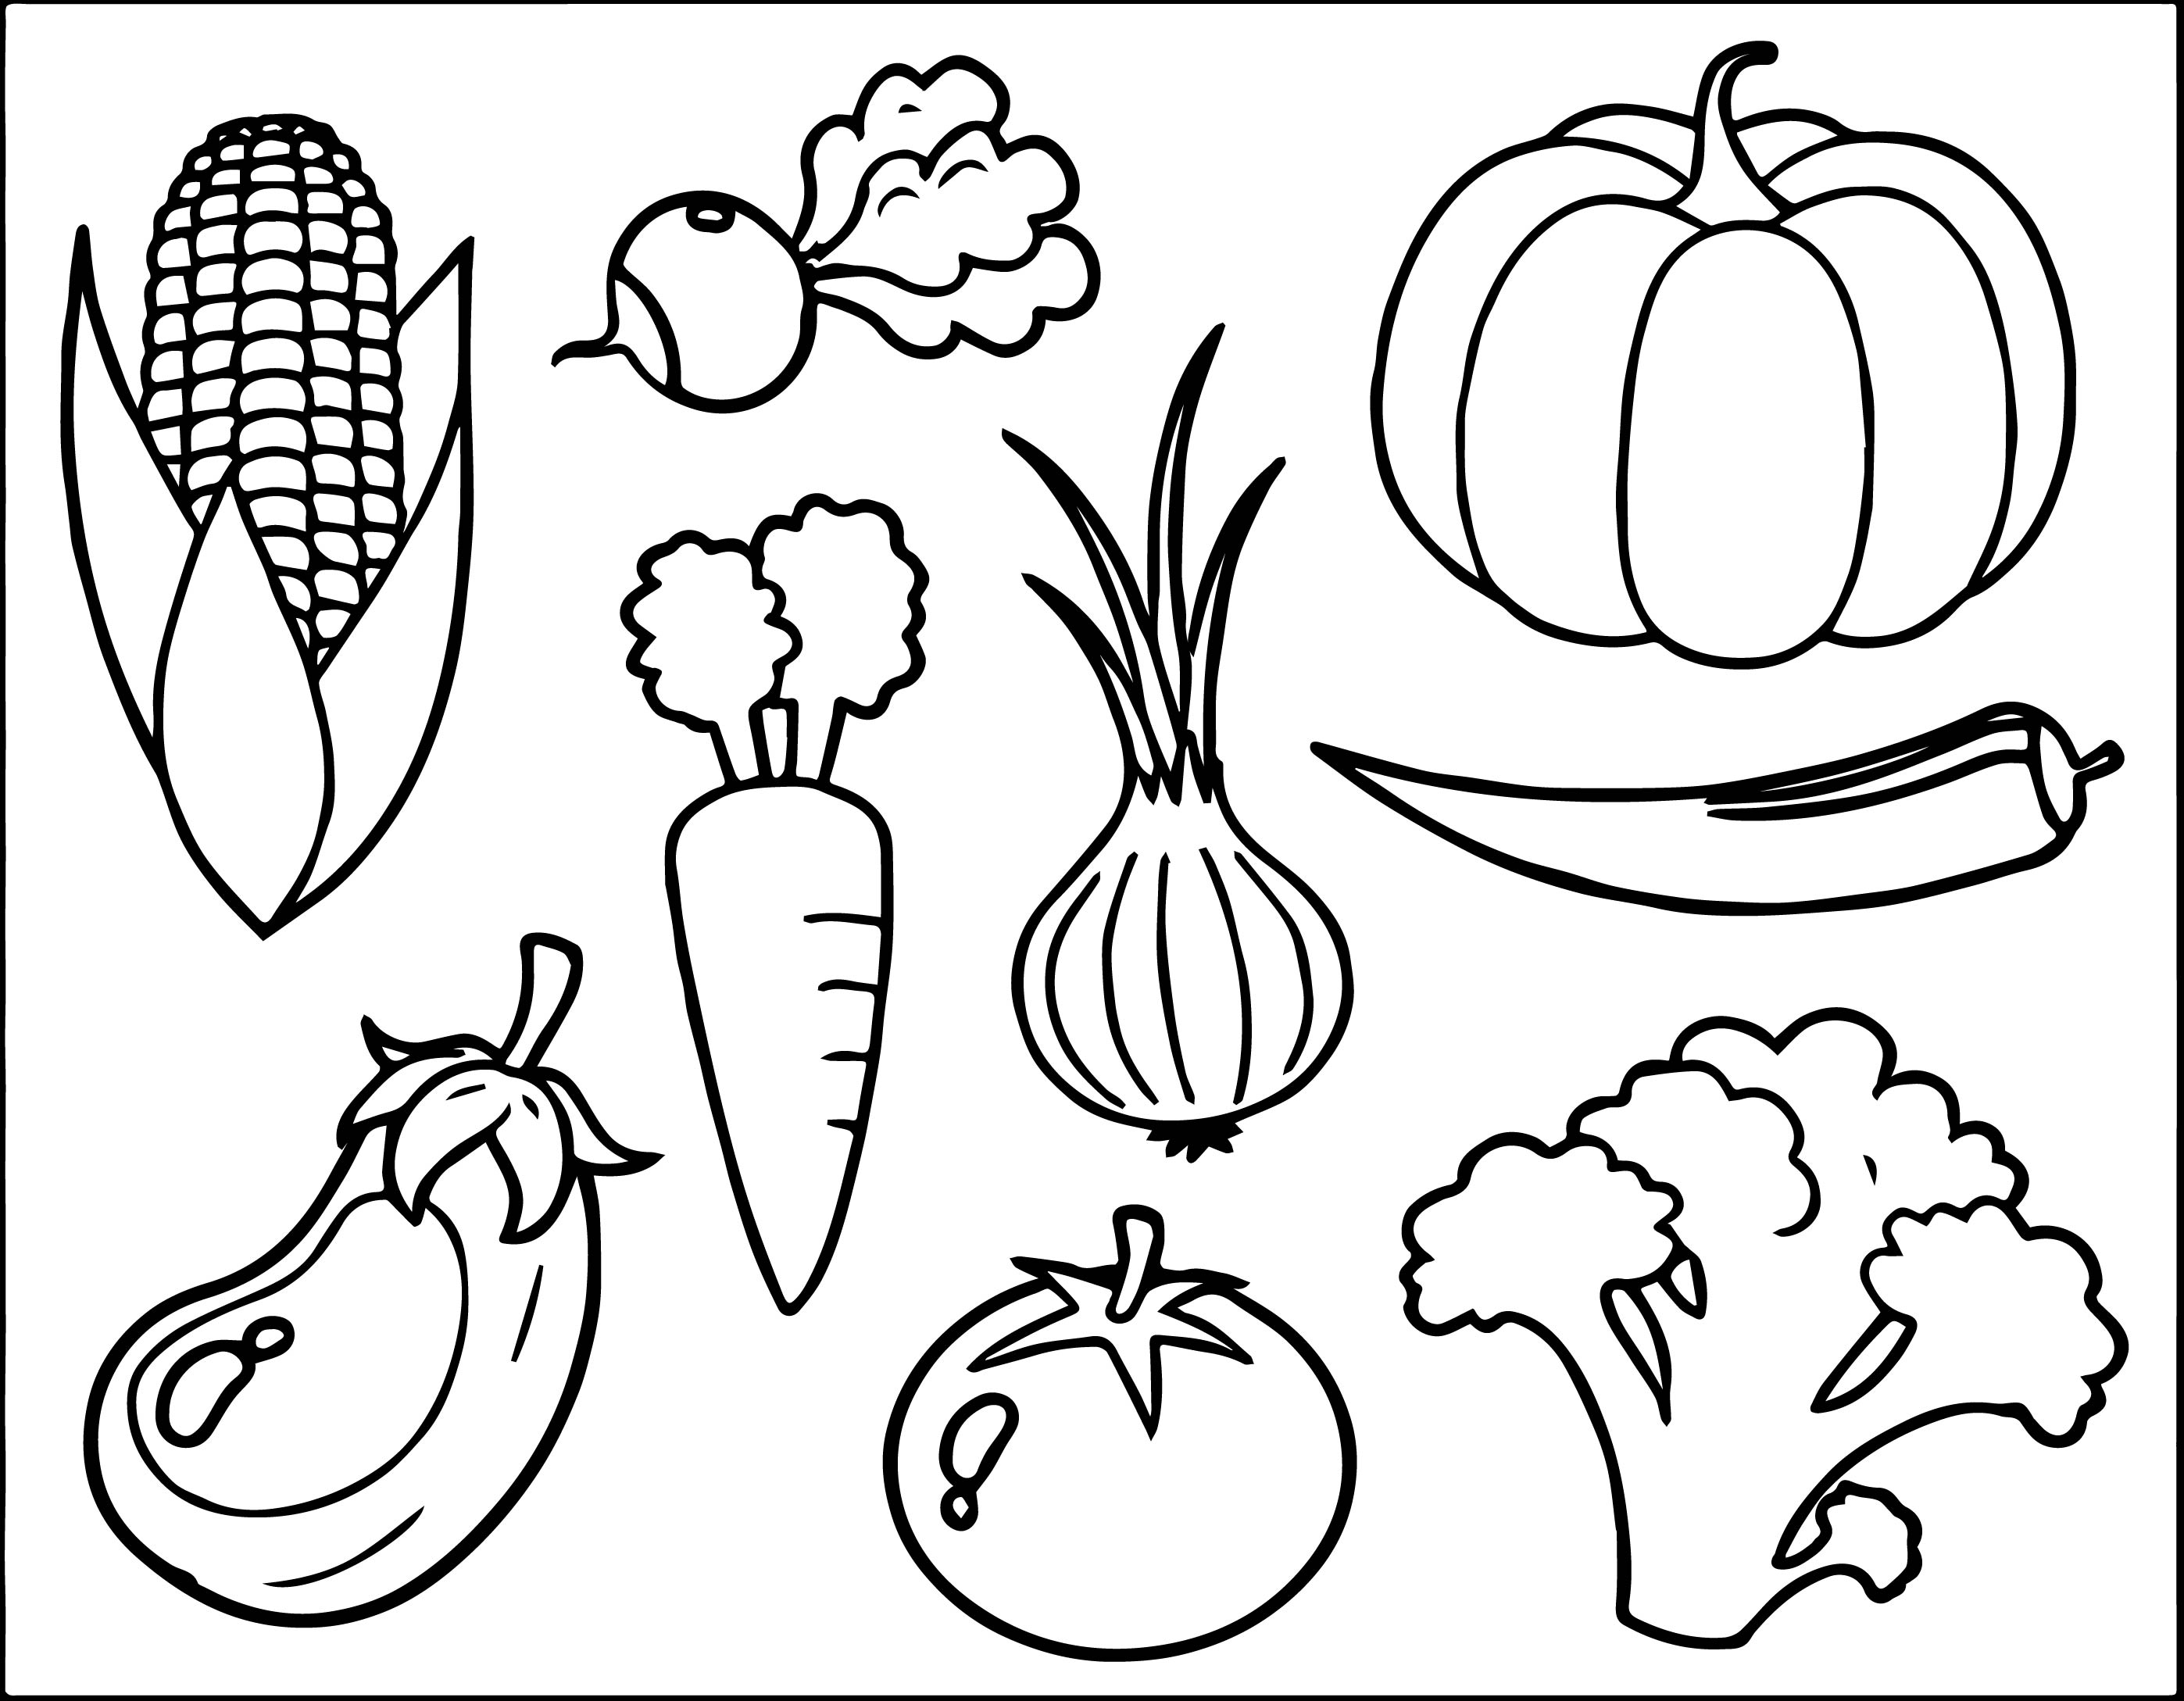 Coloring Pages Pictures Of Vegetables